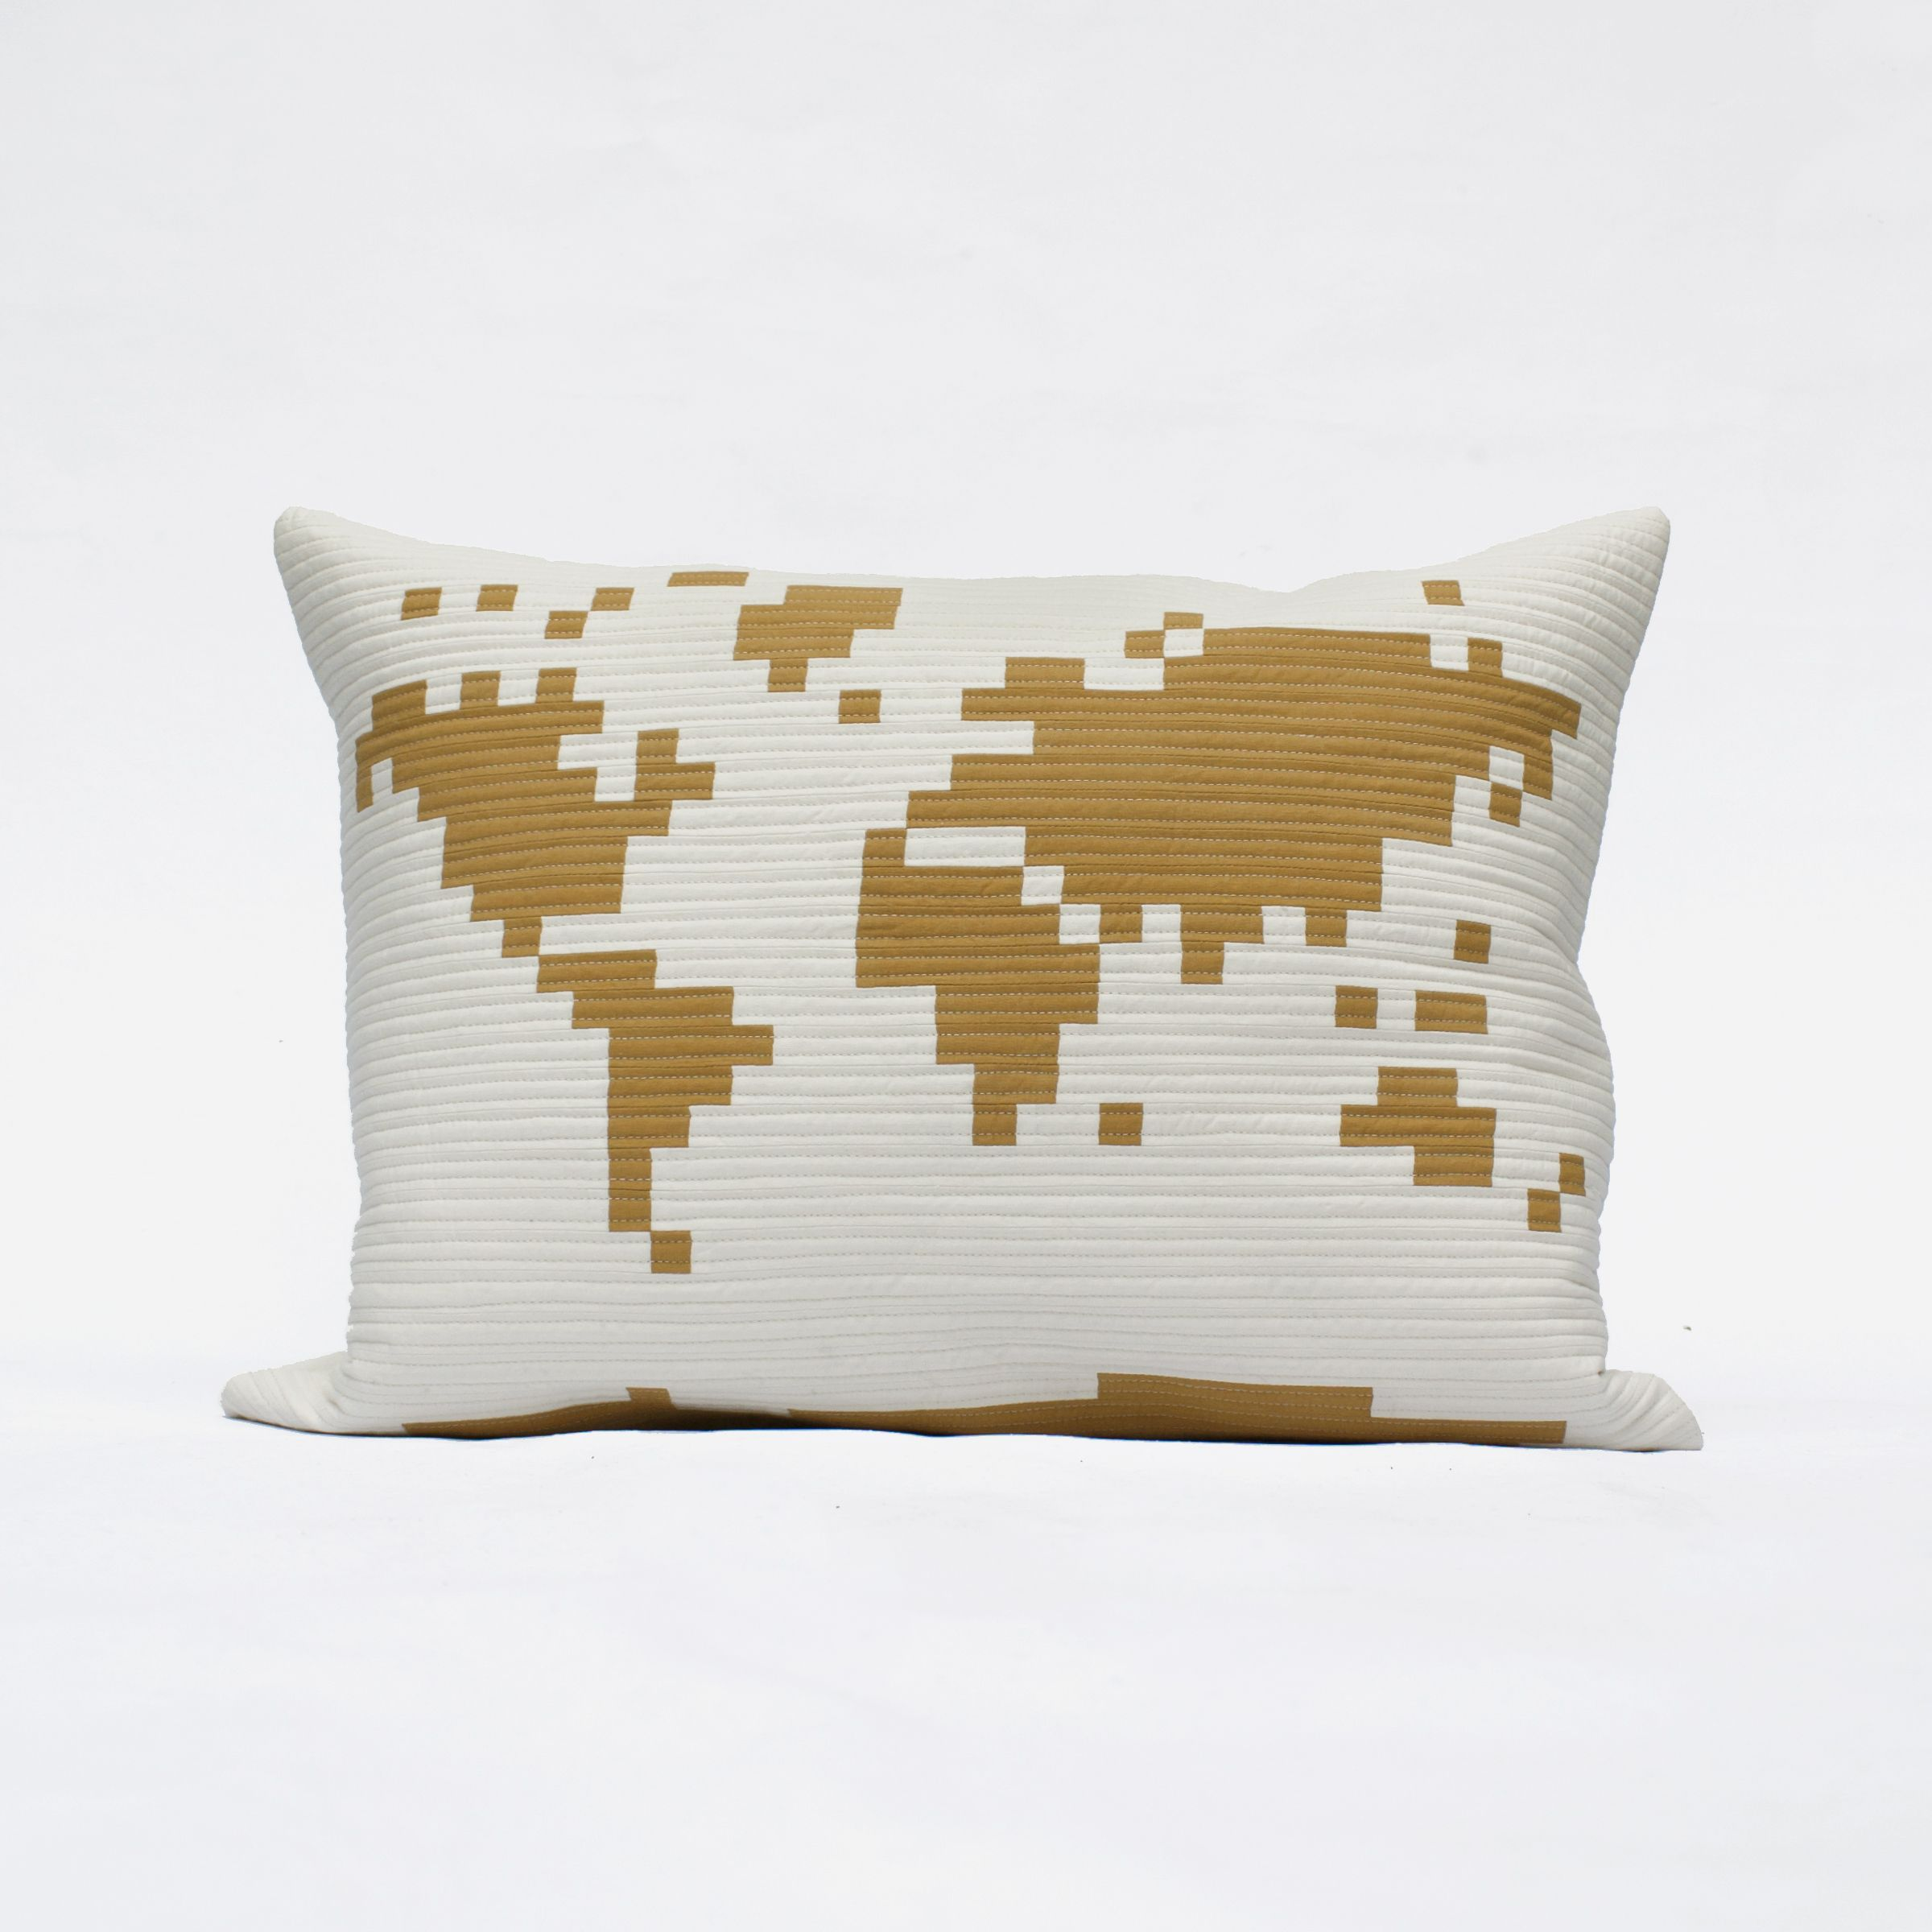 Quilted pixelated world pillow the world design is pieced into a